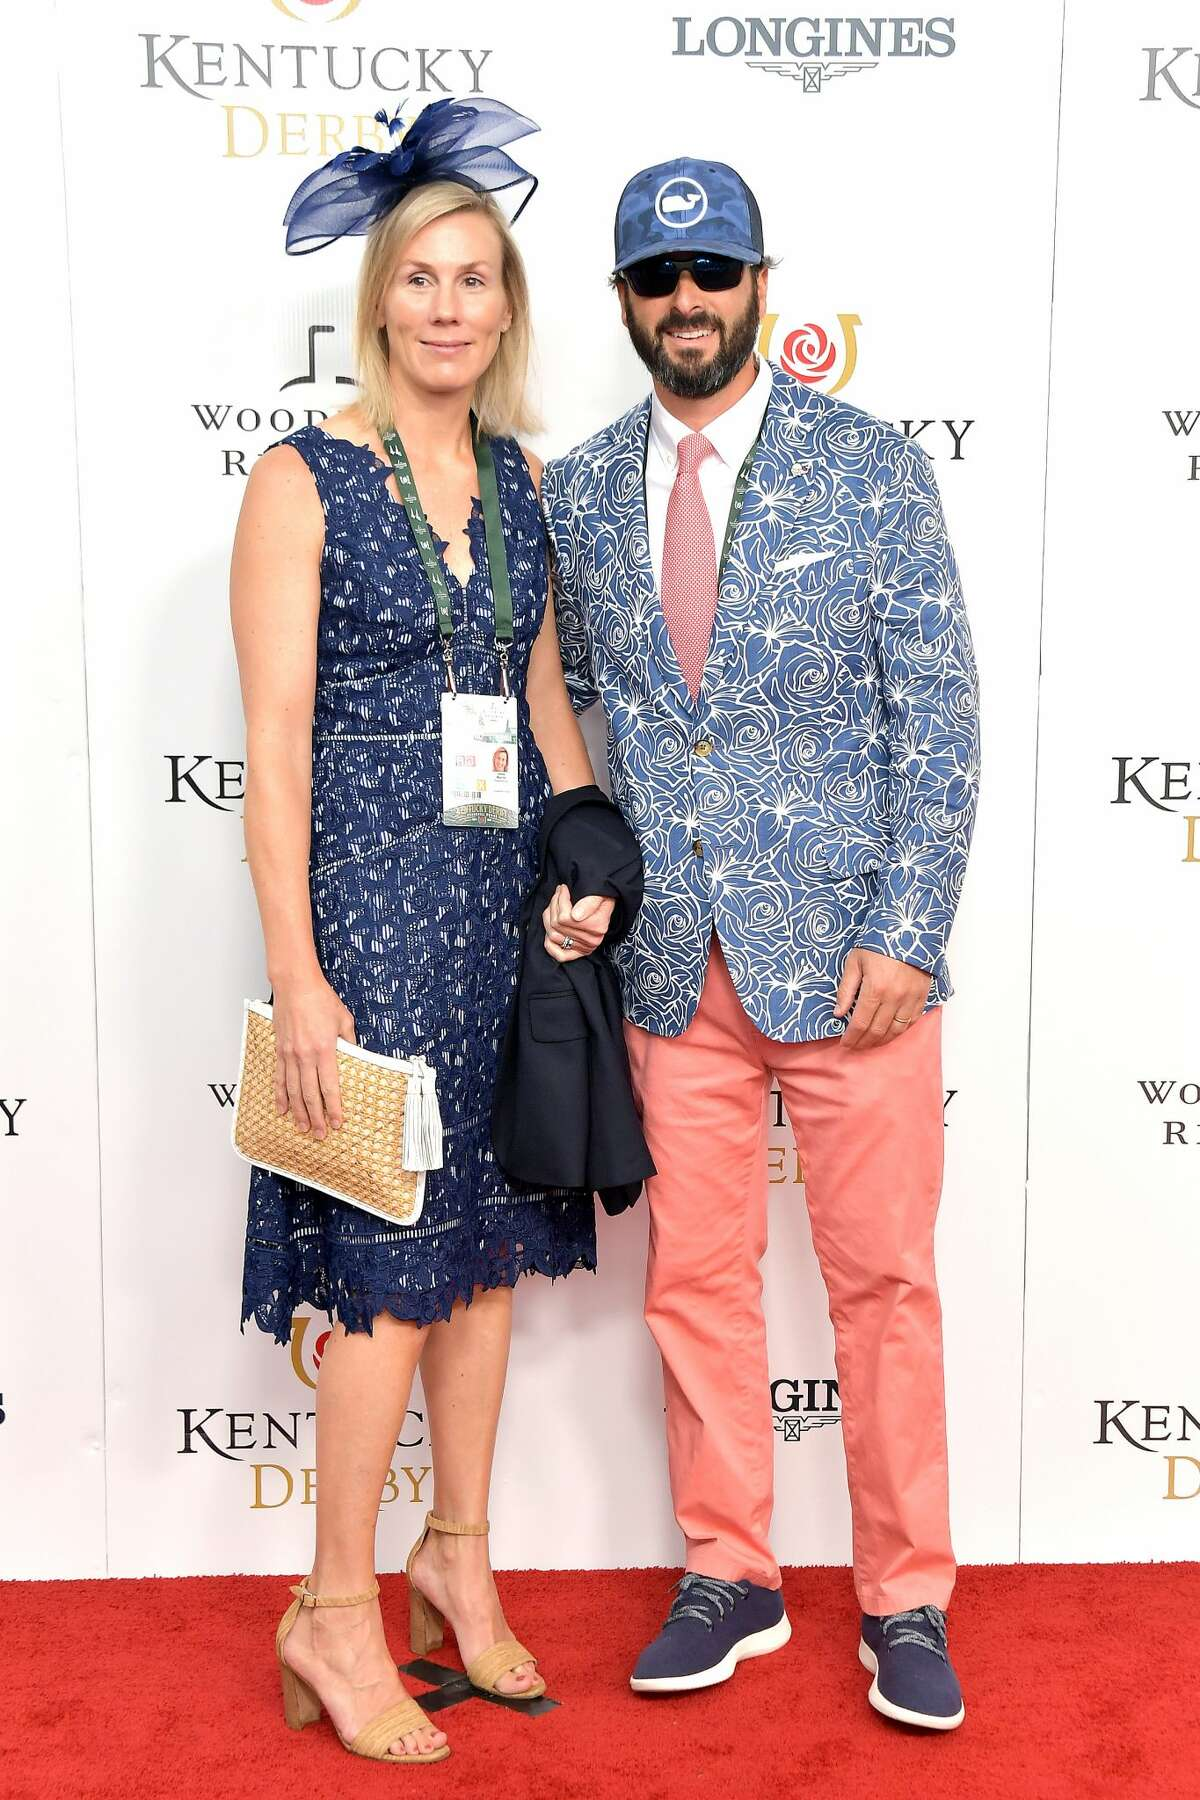 LOUISVILLE, KENTUCKY - MAY 04: Ian Murray (R) and guest attend the 145th Kentucky Derby at Churchill Downs on May 04, 2019 in Louisville, Kentucky. (Photo by Michael Loccisano/Getty Images for Churchill Downs)